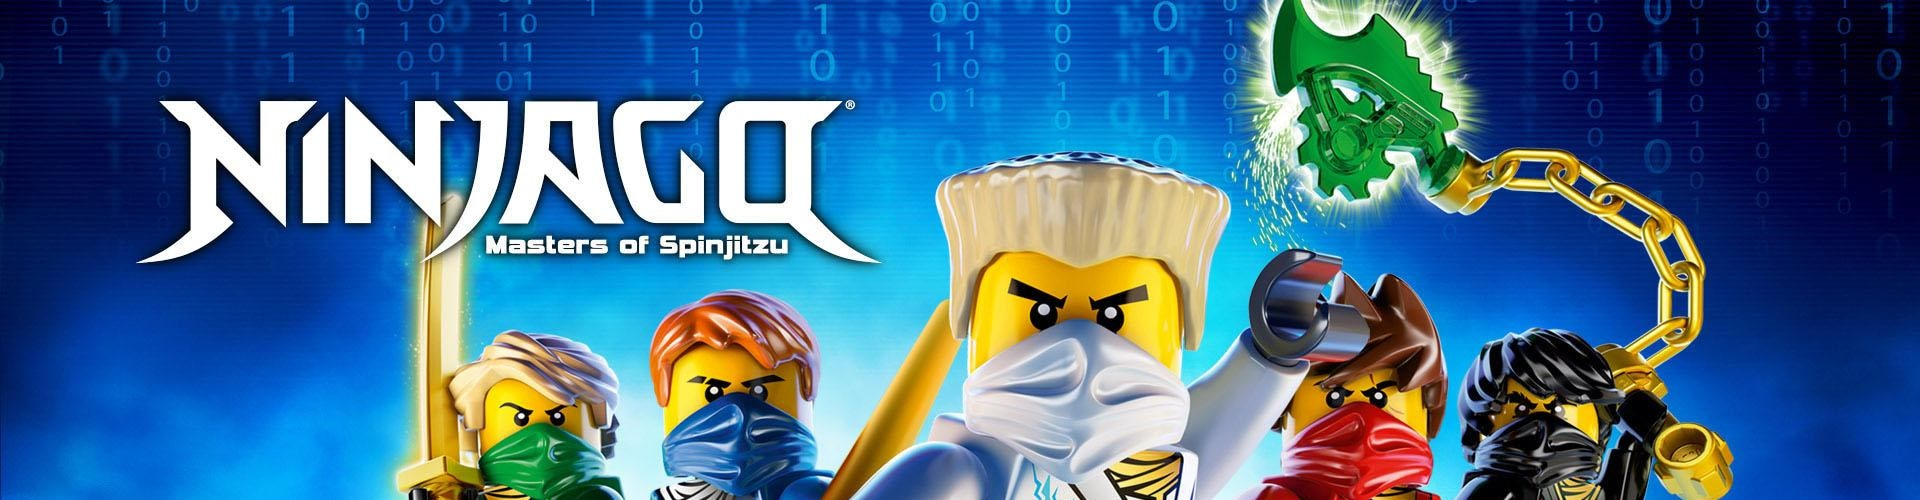 Watch LEGO Ninjago: Masters Of Spinjitzu Online